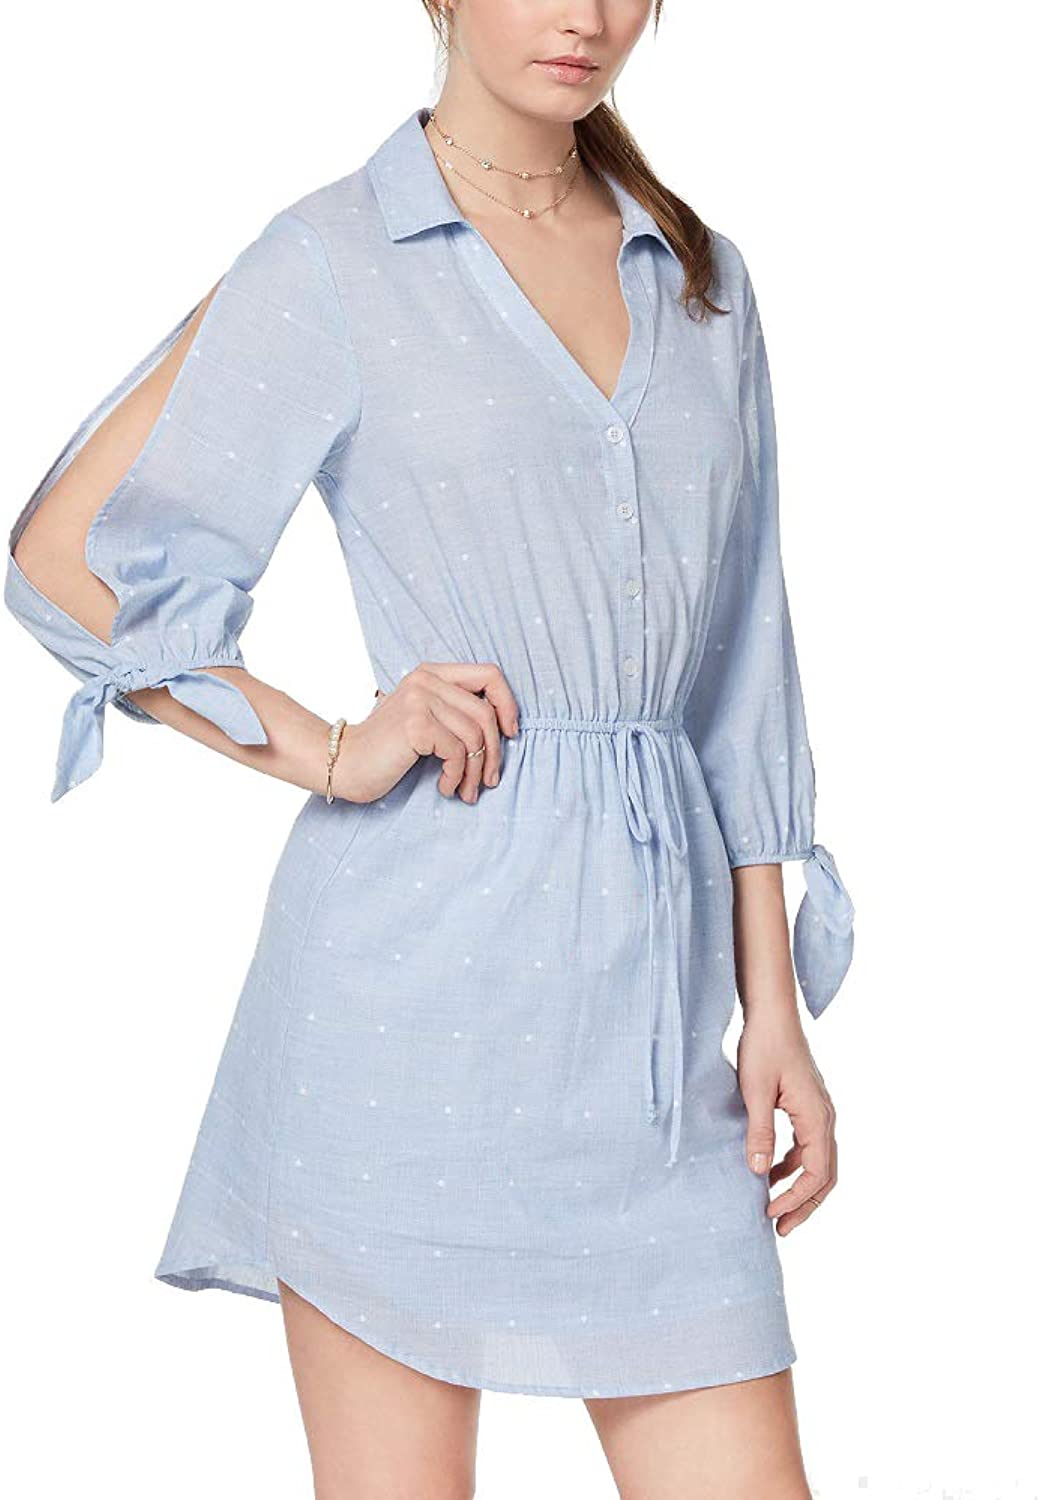 City Studios Juniors' SplitSleeve Drawstring Shirtdress